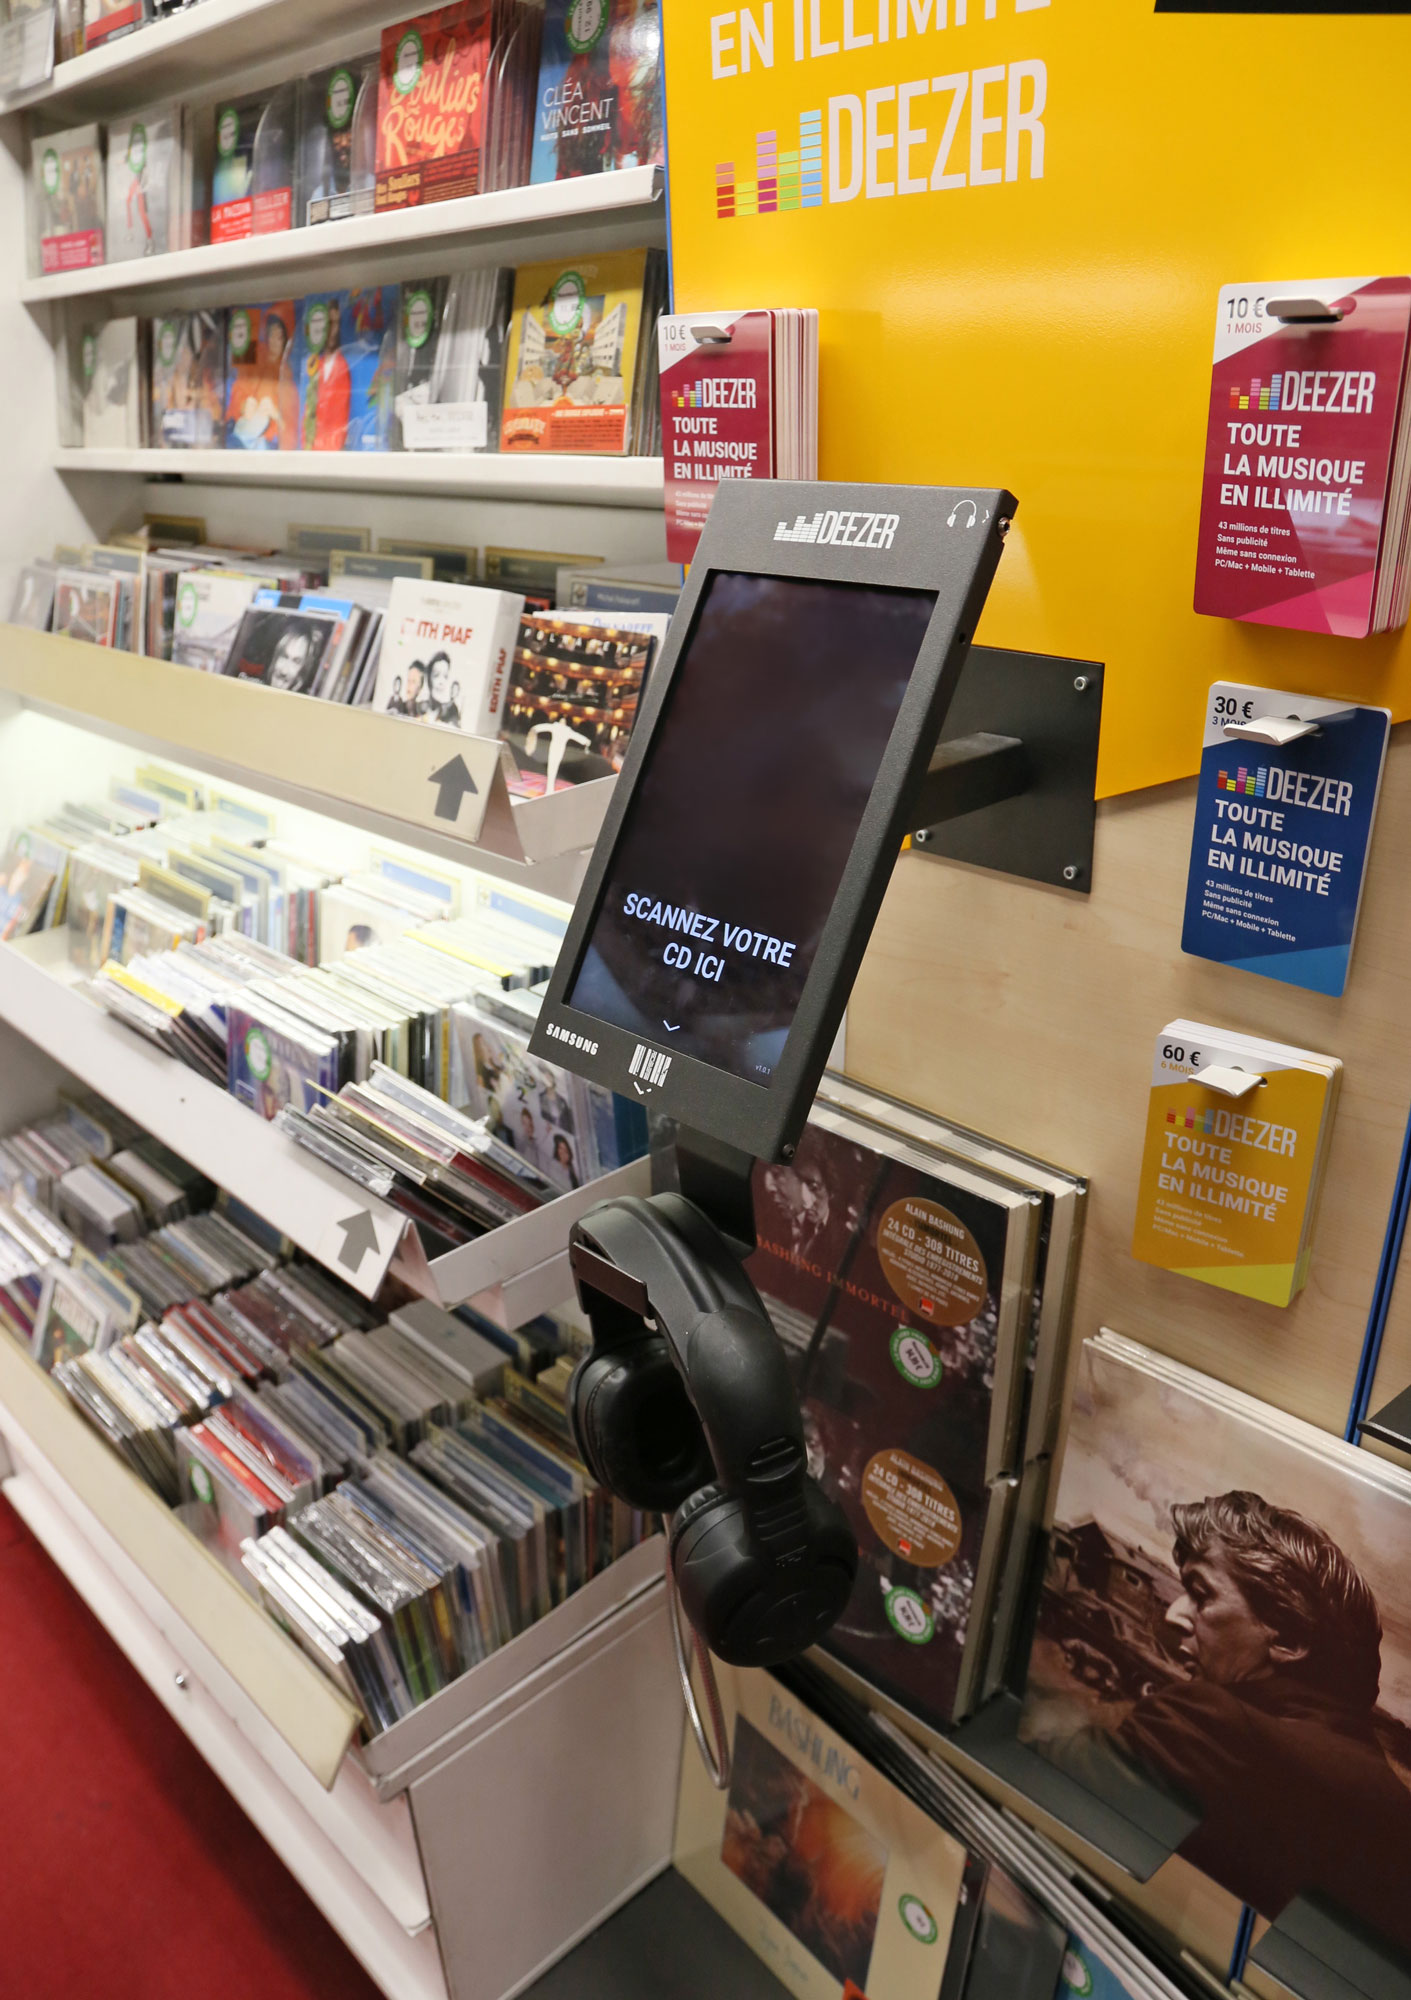 Deezer station in situation at the FNAC